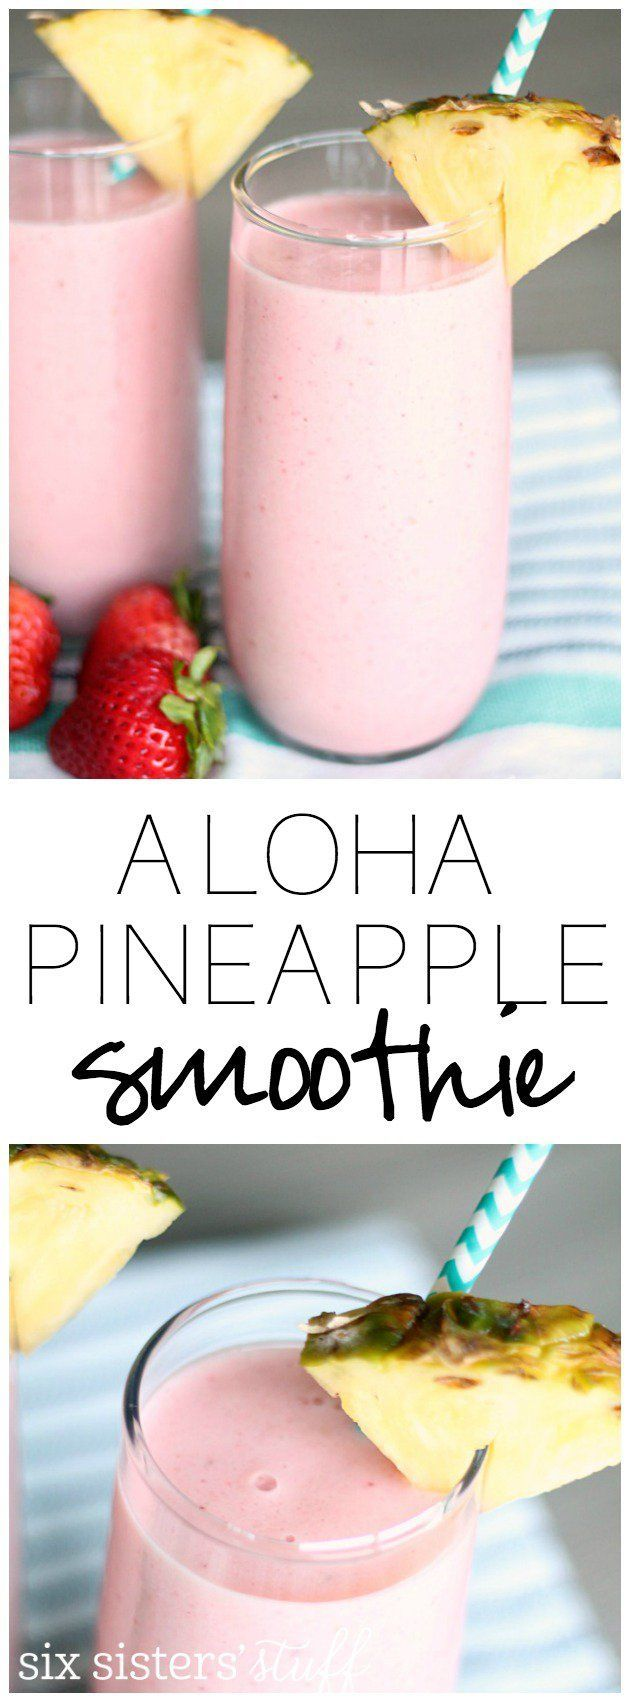 Jamba Juice Aloha Pineapple Smoothie Copycat Jamba Juice Aloha Pineapple Smoothie from  | Healthy Breakfast Recipe | Easy Snack Ideas | Kid Approved SnacksCopycat Jamba Juice Aloha Pineapple Smoothie from  | Healthy Breakfast Recipe | Easy Snack Ideas | Kid Approved Snacks